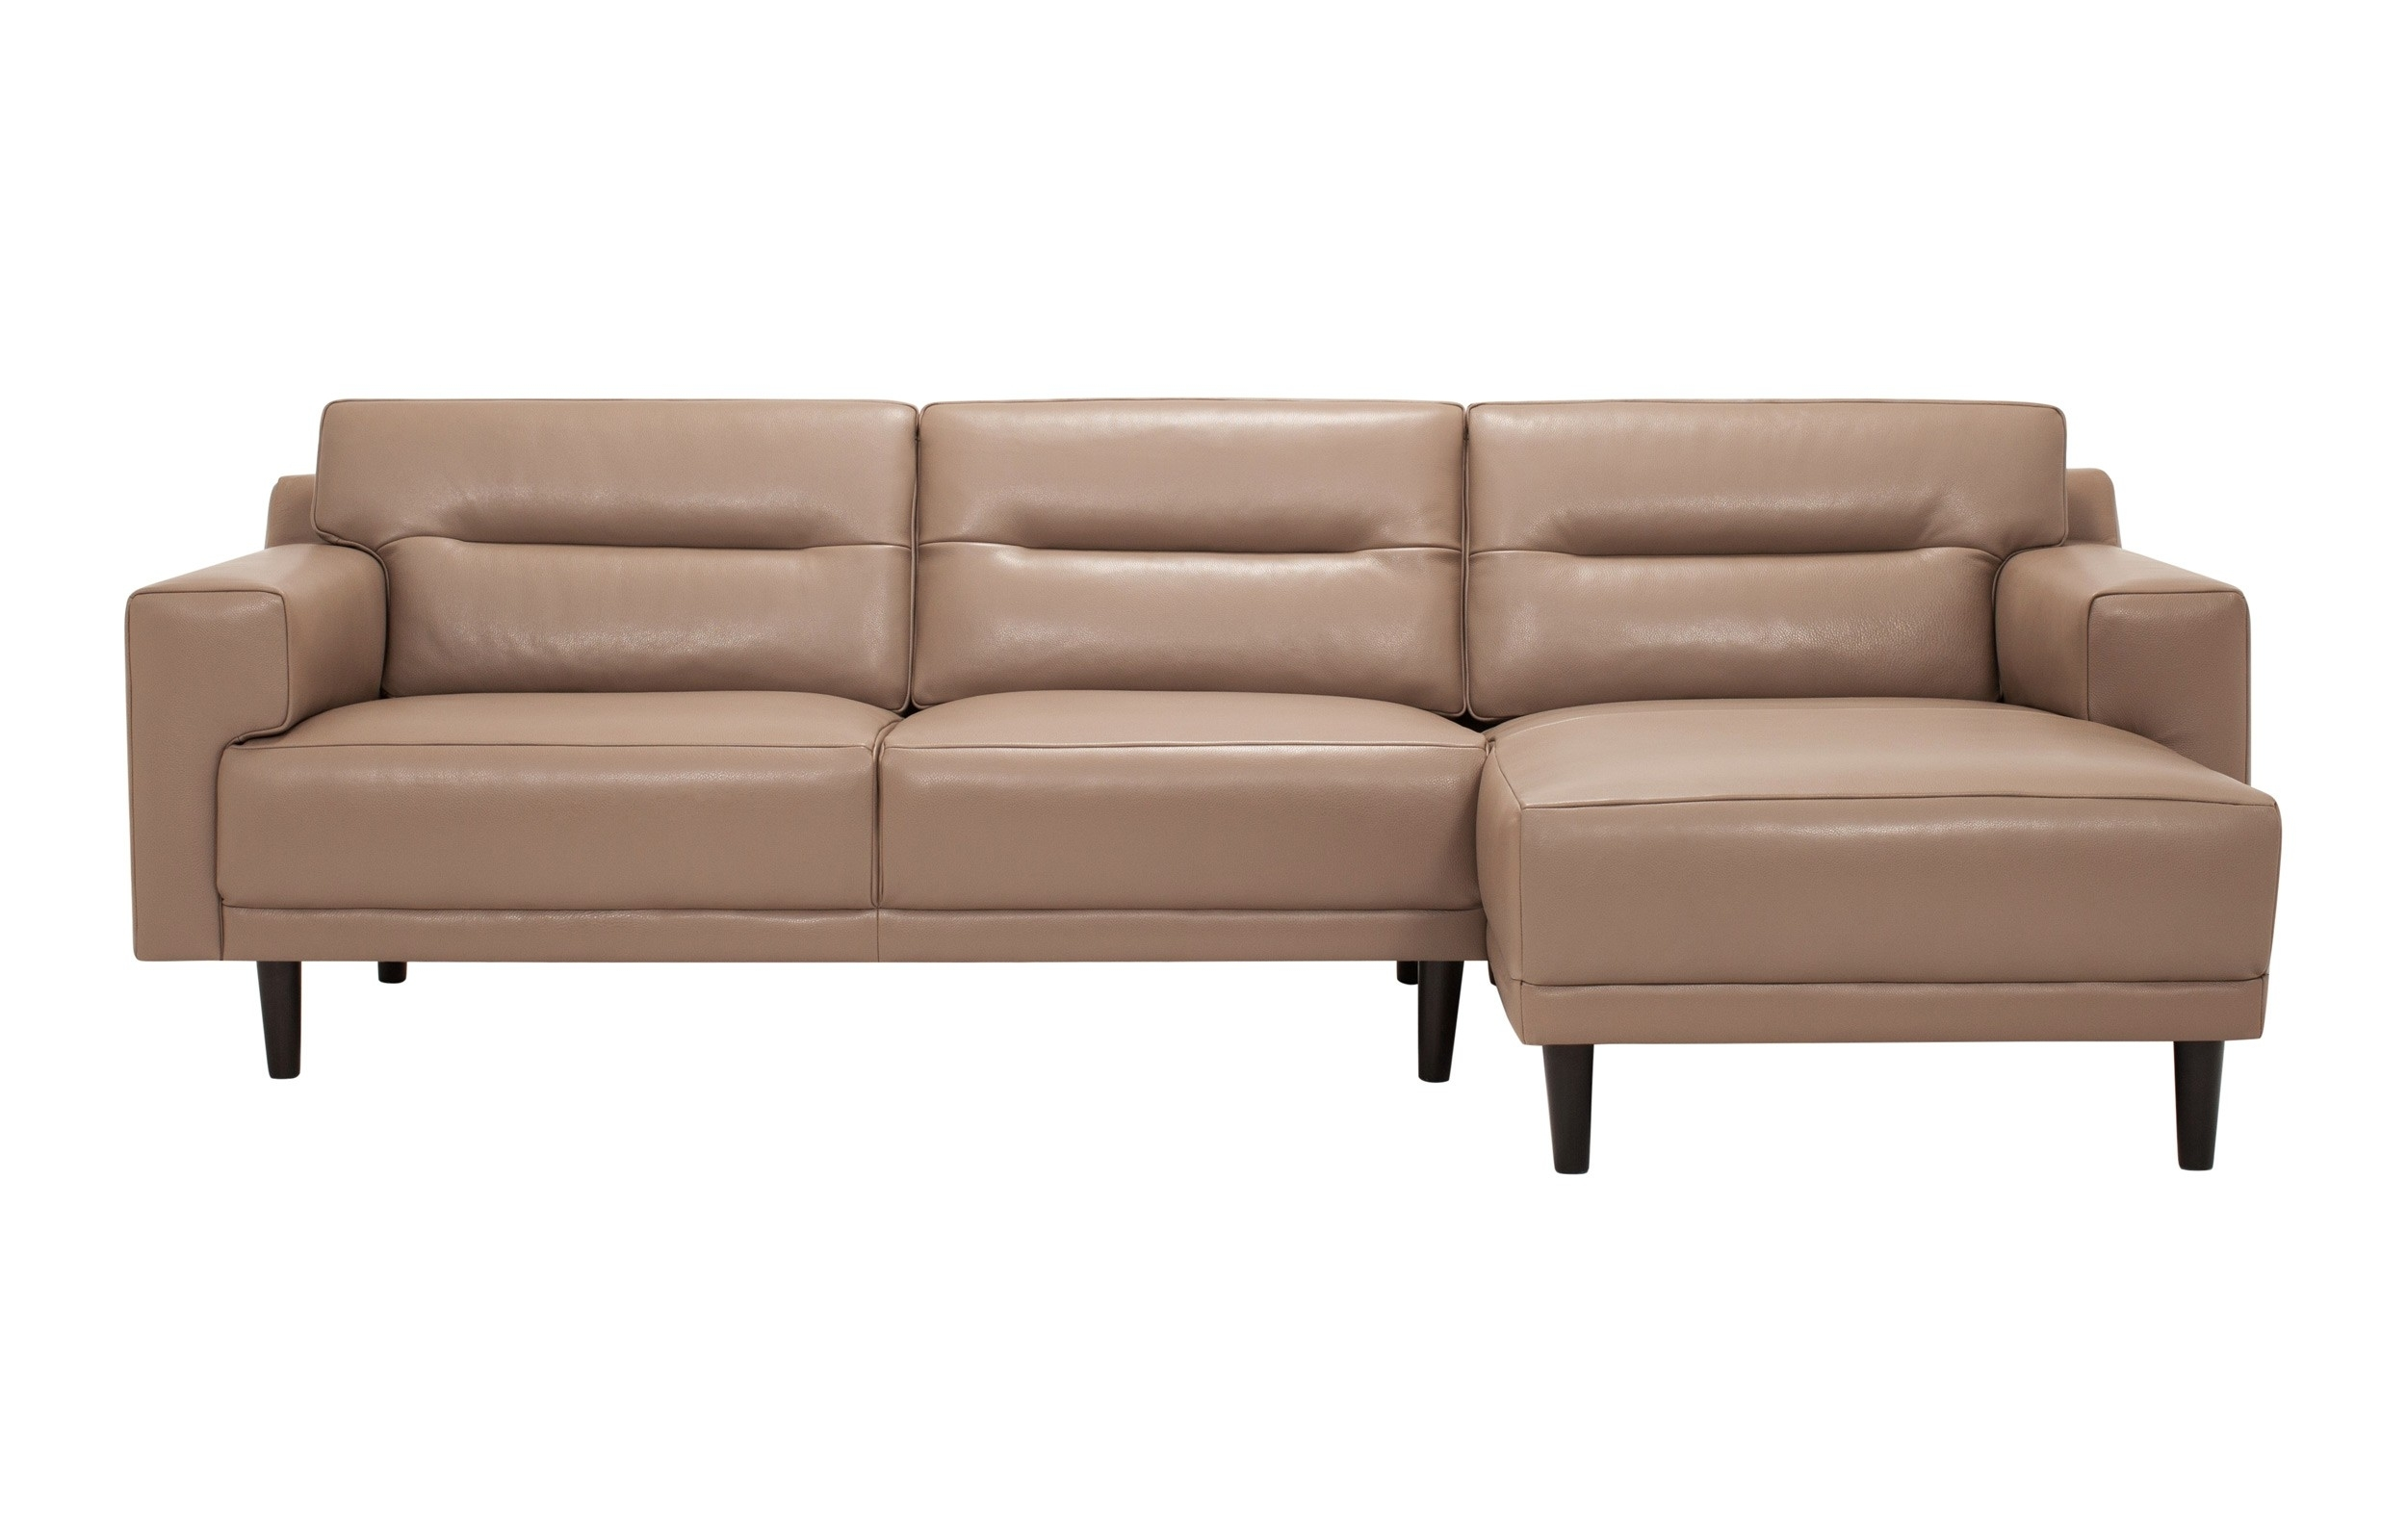 Collection Of Solutions Sectional Sofa With 2 Chaises On Aspen 2 Intended For Aspen 2 Piece Sectionals With Laf Chaise (Image 12 of 25)